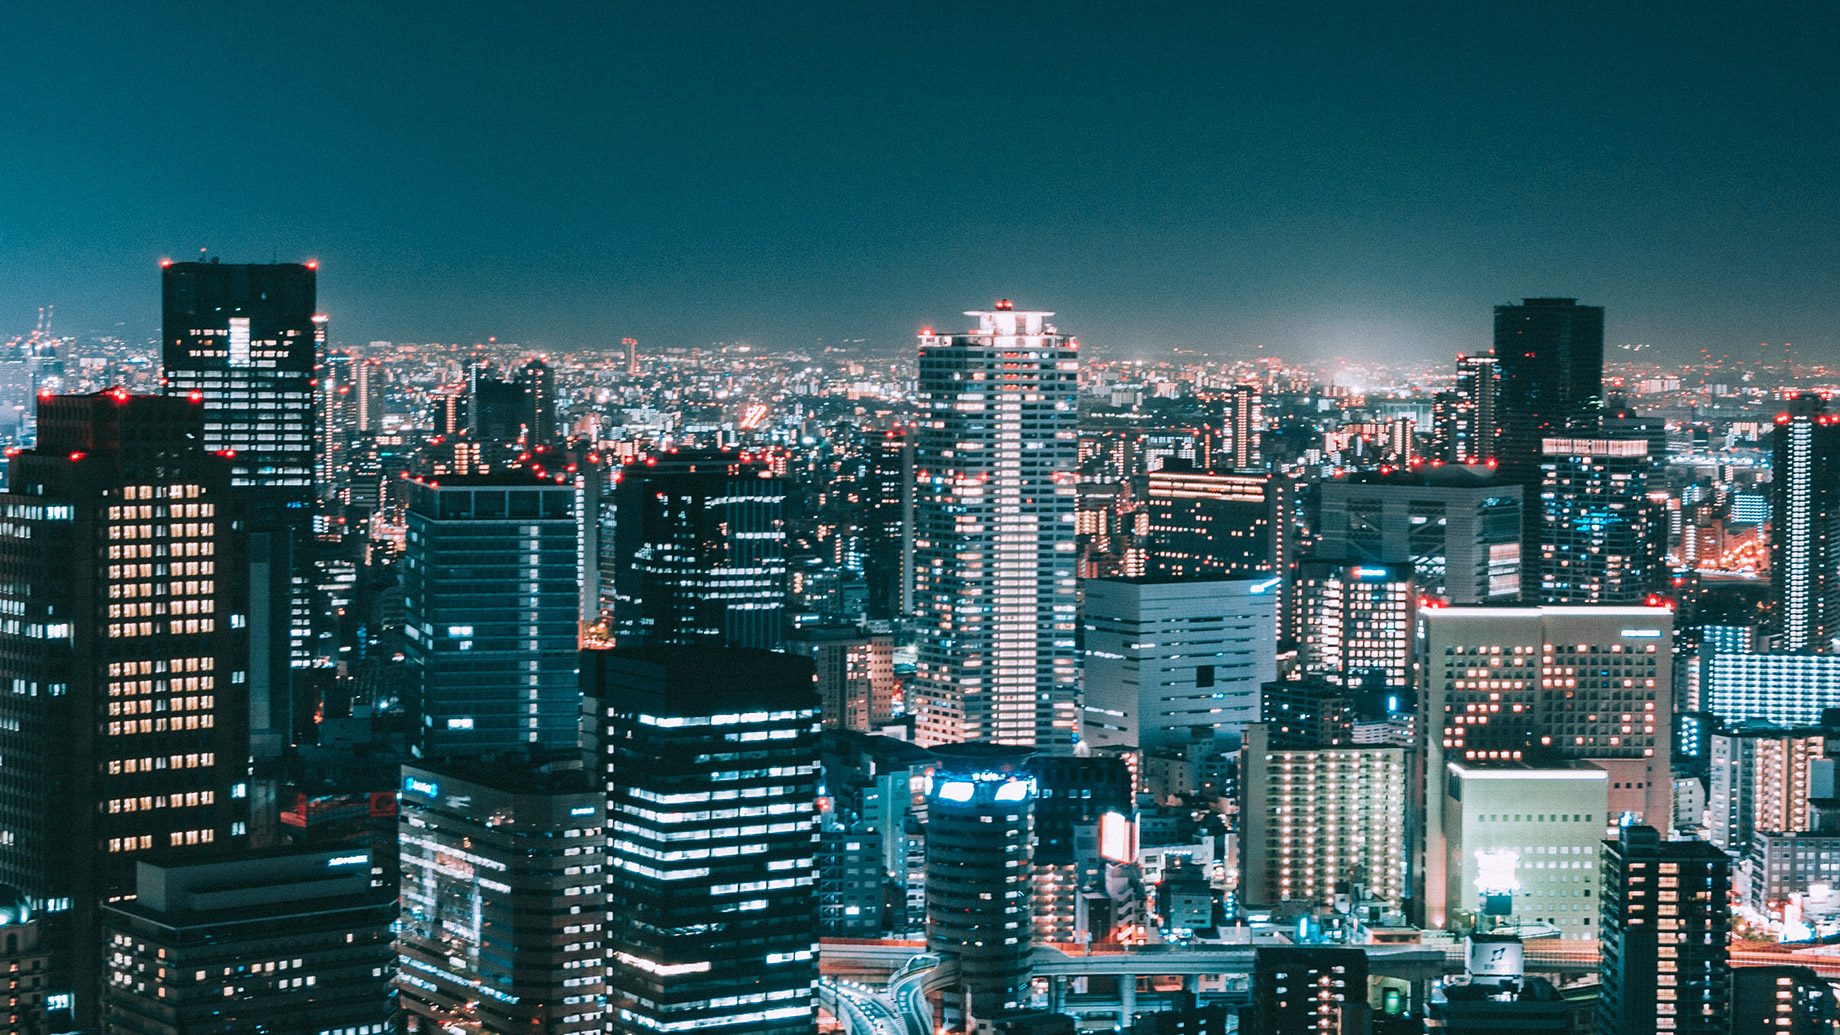 Tokyo, Japan - The Most Expensive Real Estate Cities in the World